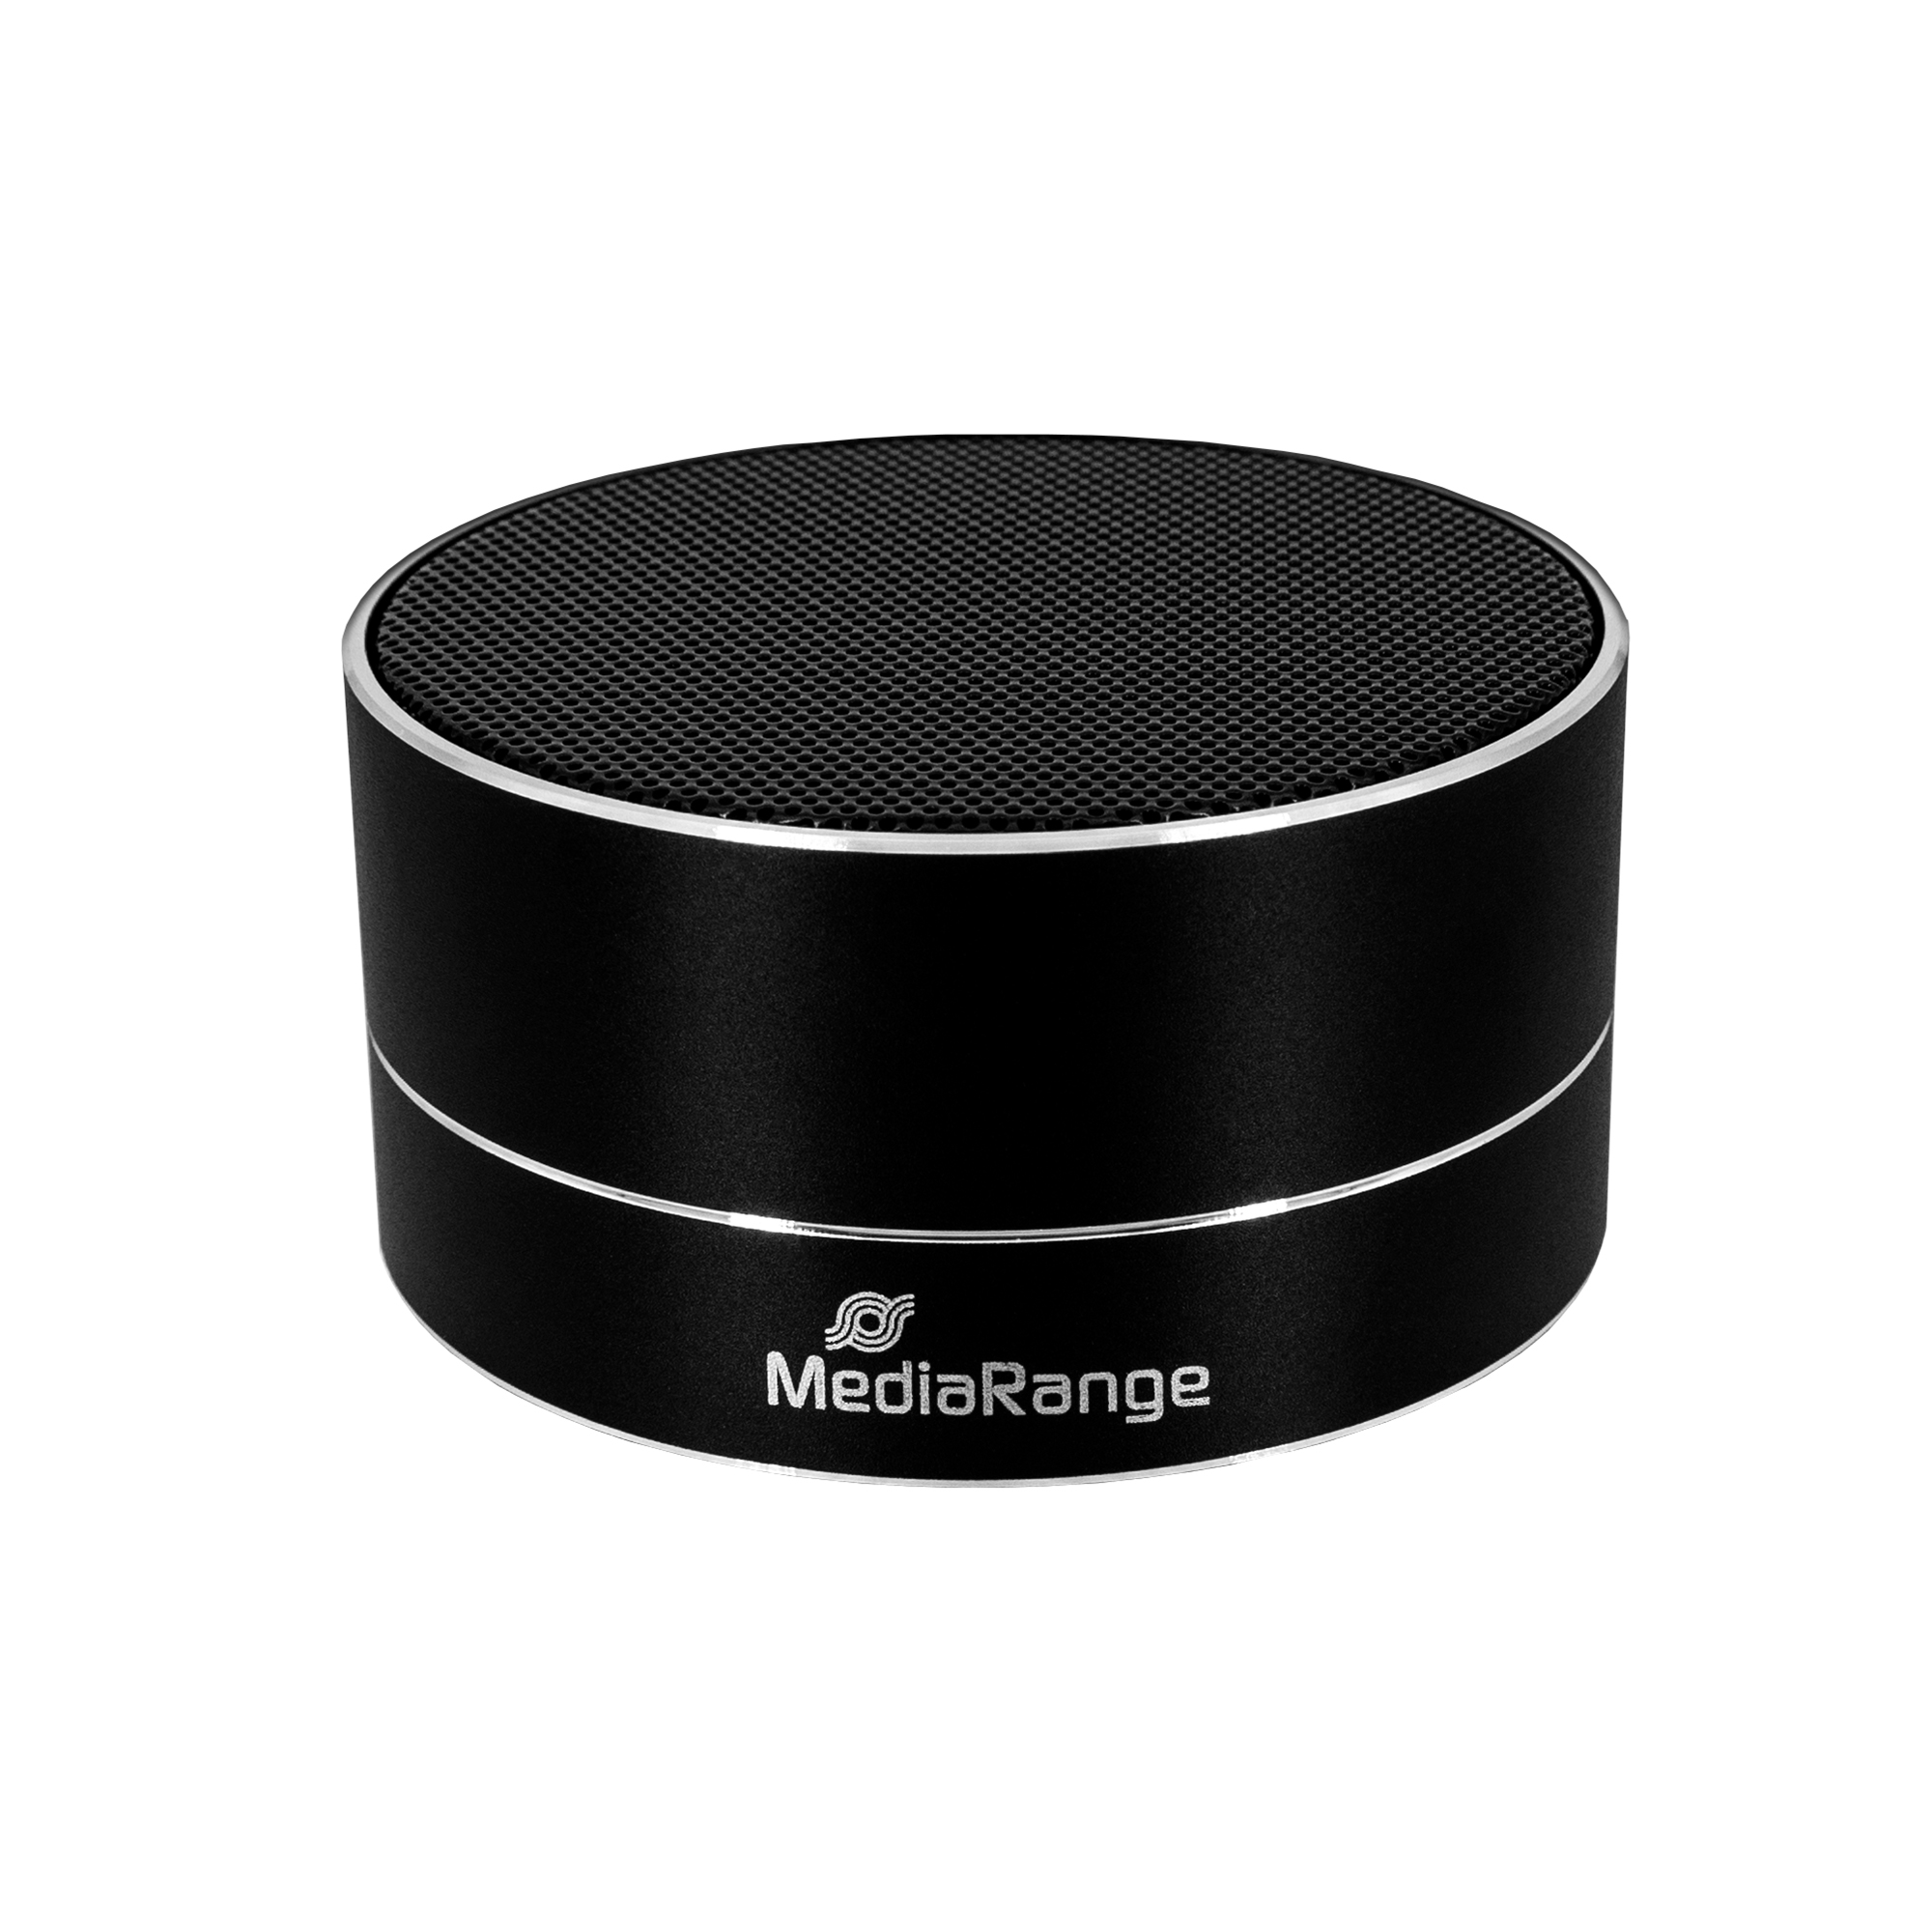 Speakers Media Range BlueTooth Portable Speaker Range Up to 10metres Ref MR733